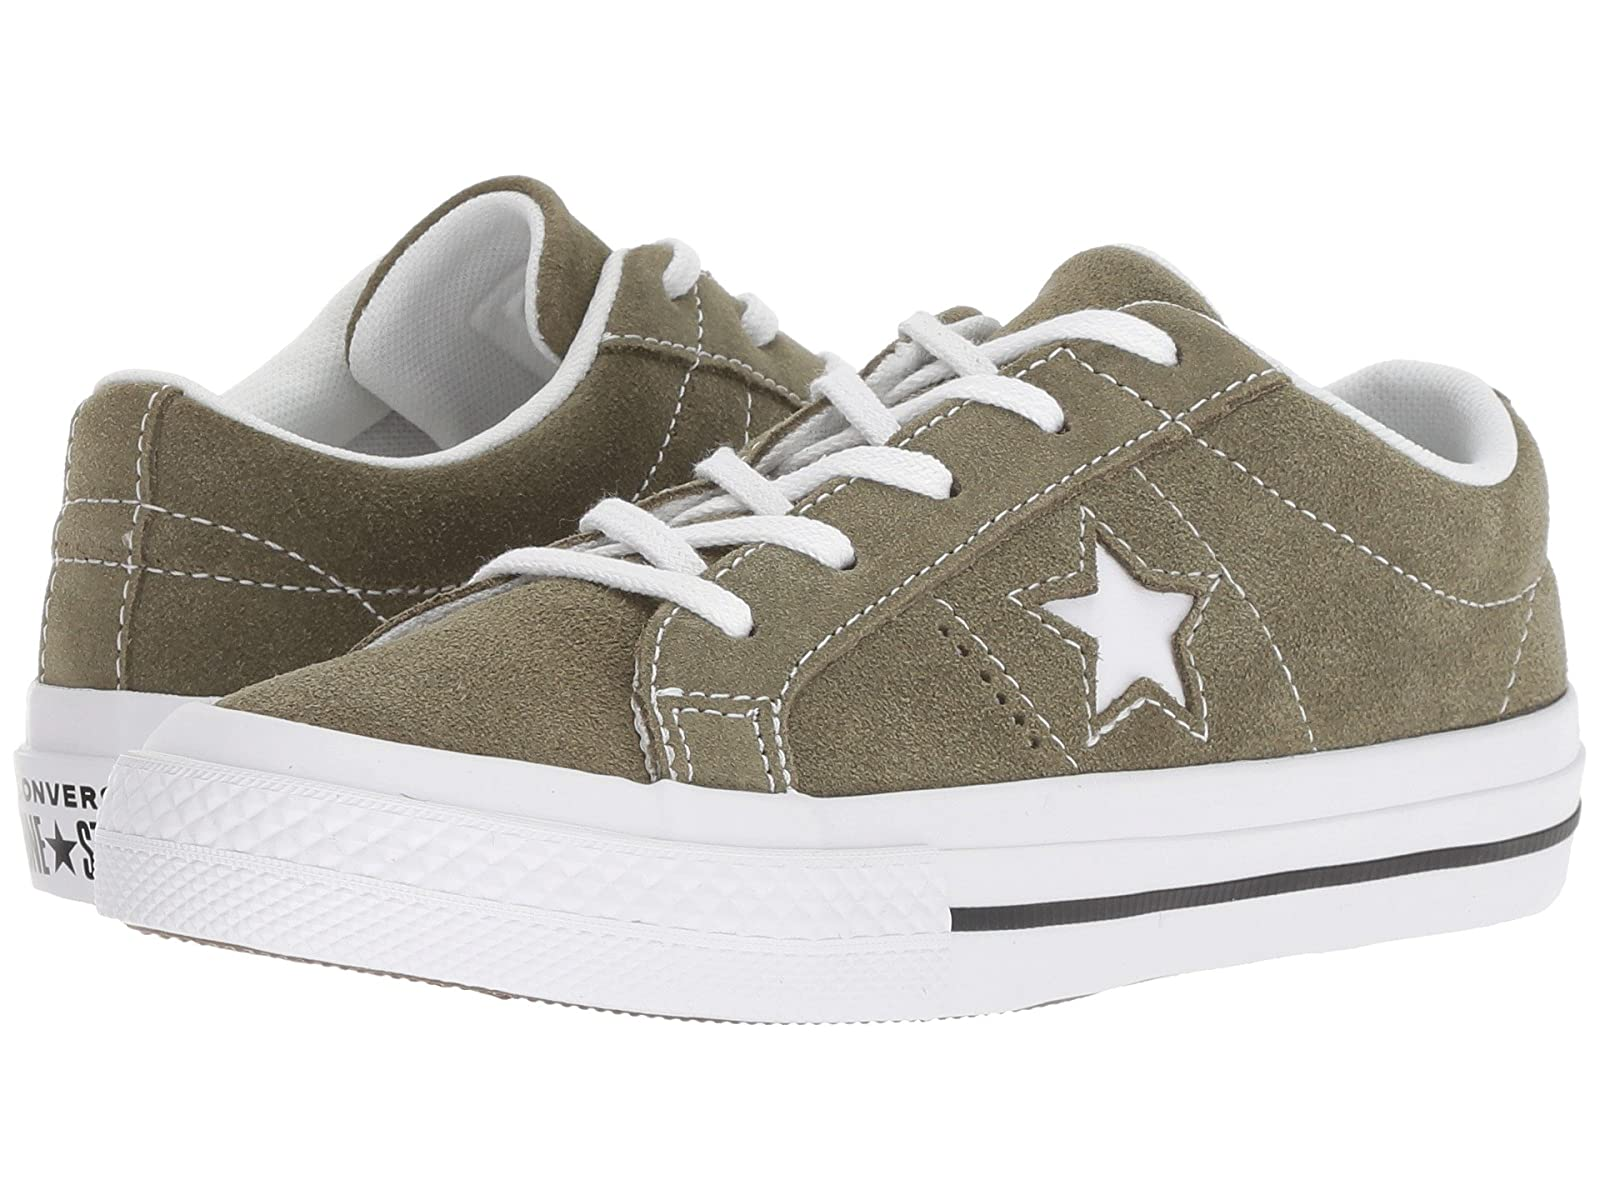 Converse Kids One Star - Ox (Little Kid)Atmospheric grades have affordable shoes